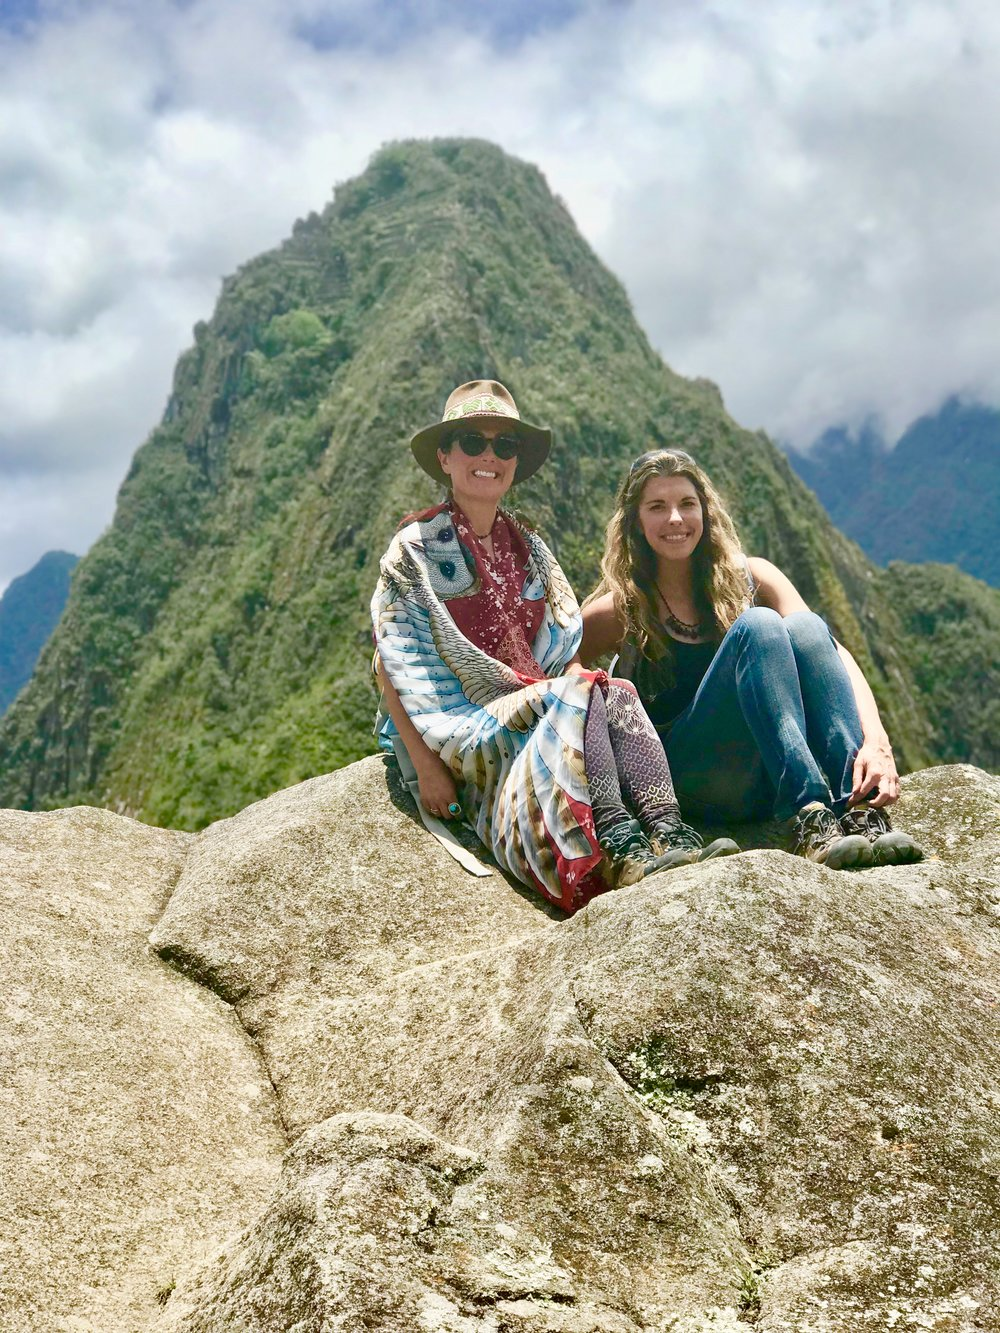 Chloë Rain, Spiritual Guide & Founder of Explore Deeply with  Walking the Path of Purpose Apprentice  on Machu Picchu Mountain with Huayna Picchu Mountain in the background.